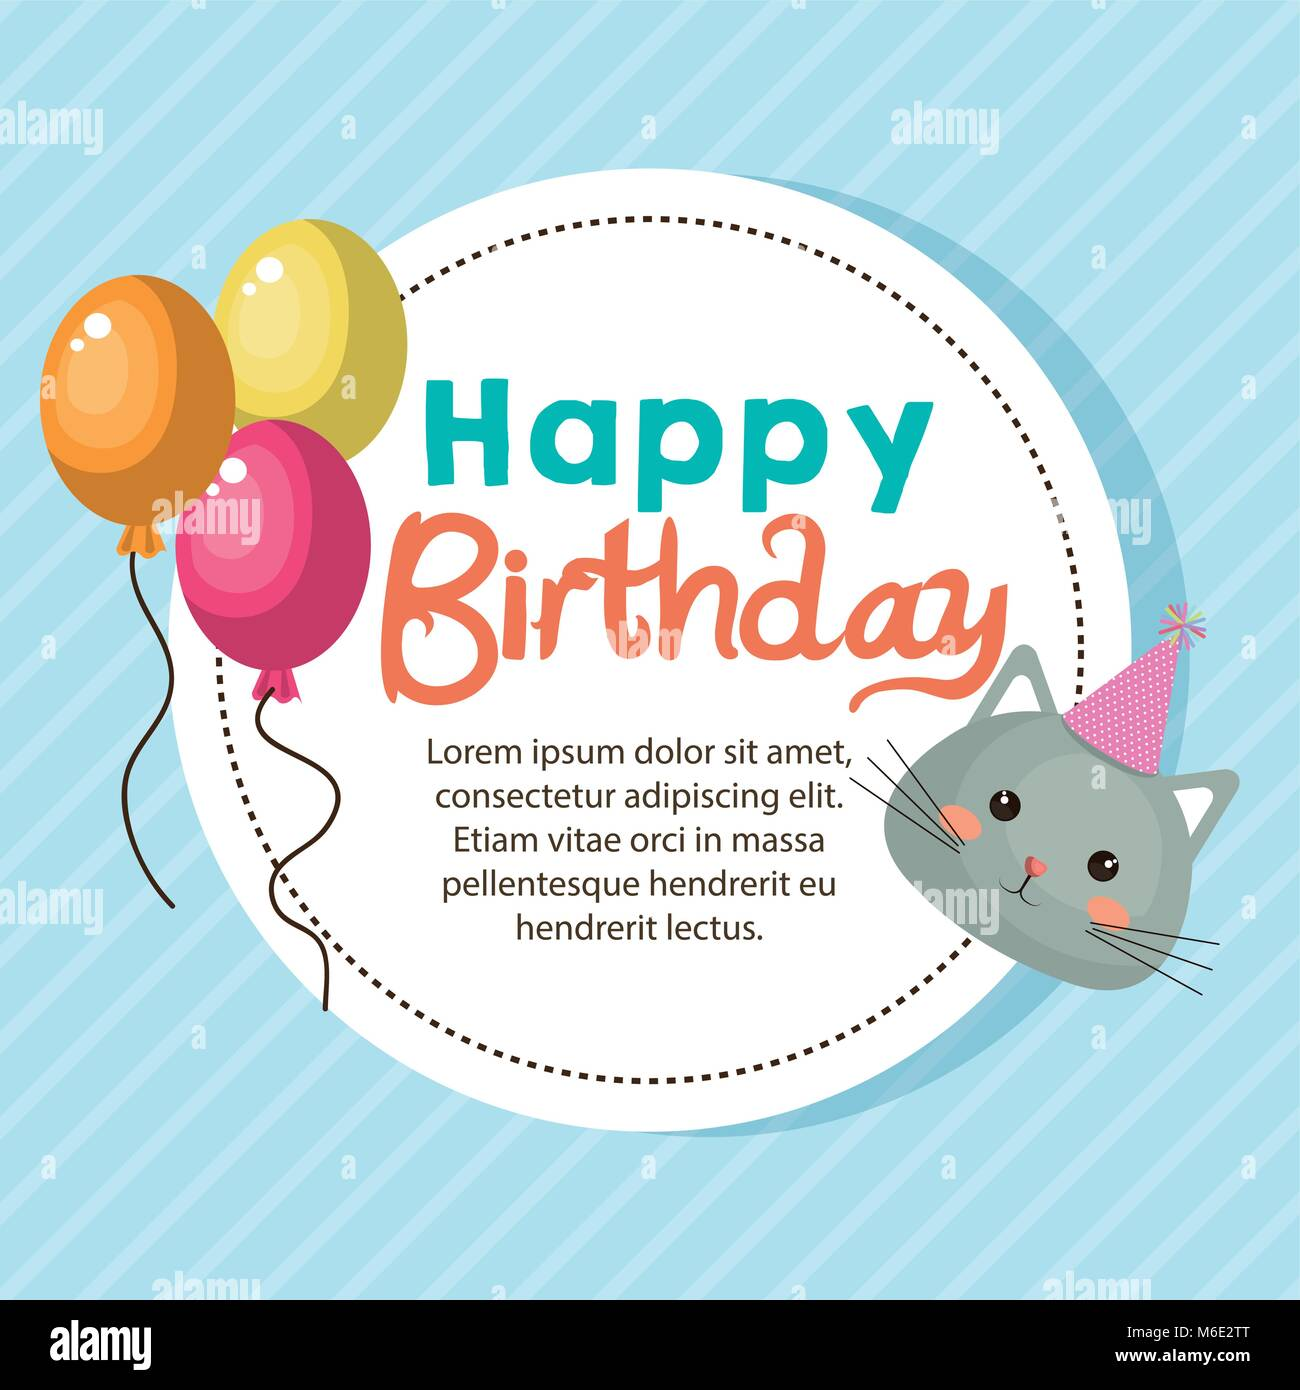 happy birthday card with cute cat character - Stock Image